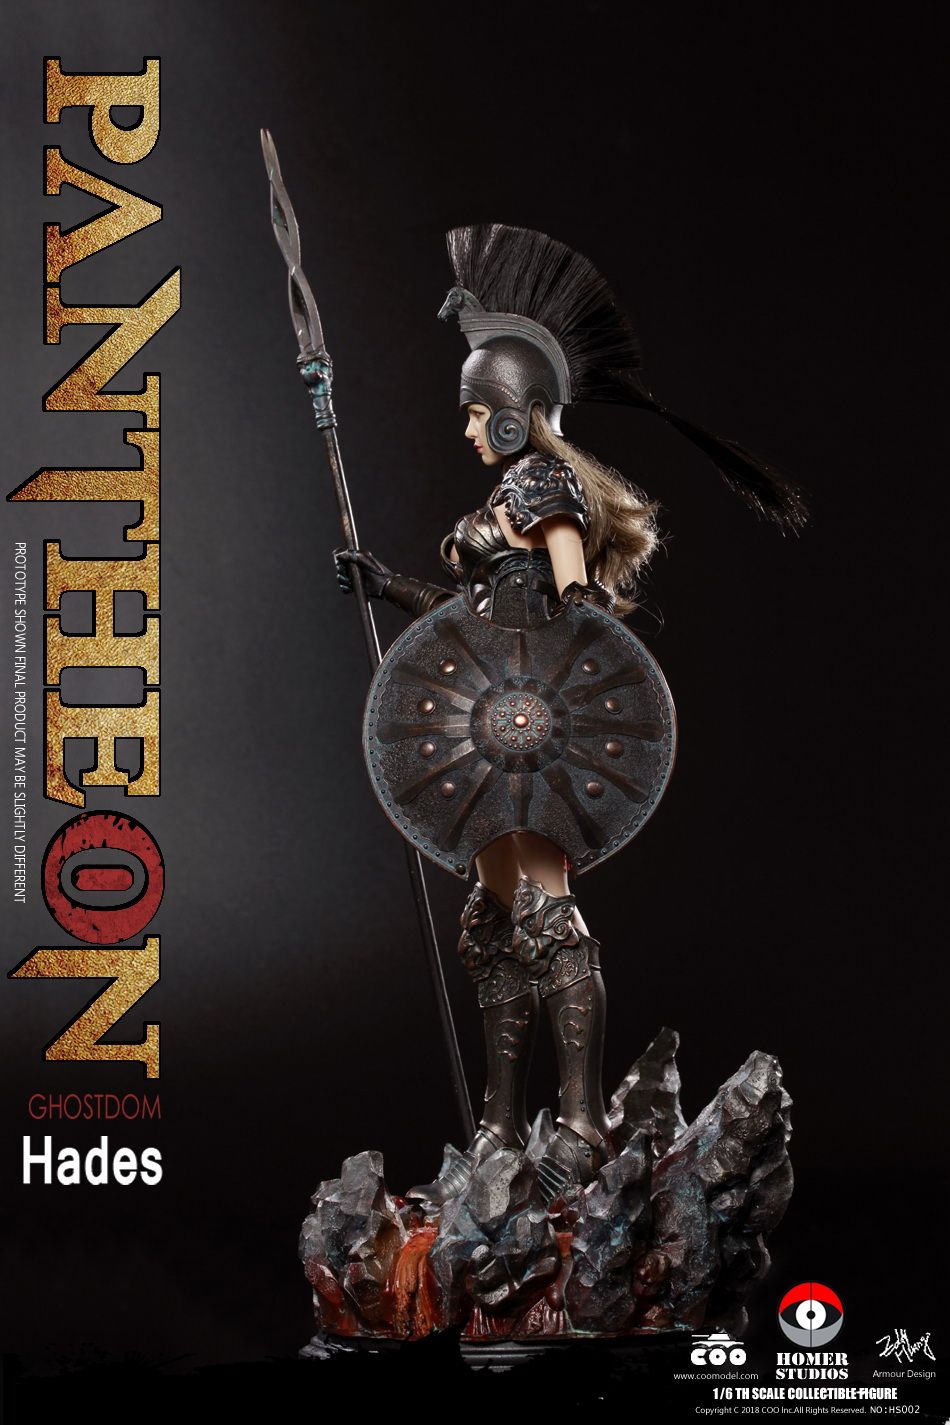 Coomodel X Homer Hs002 Pantheon Hades Goddess Of Underworld 1 6 Figure With Base Figure Toy Action Figure Toysaction Toys Aliexpress